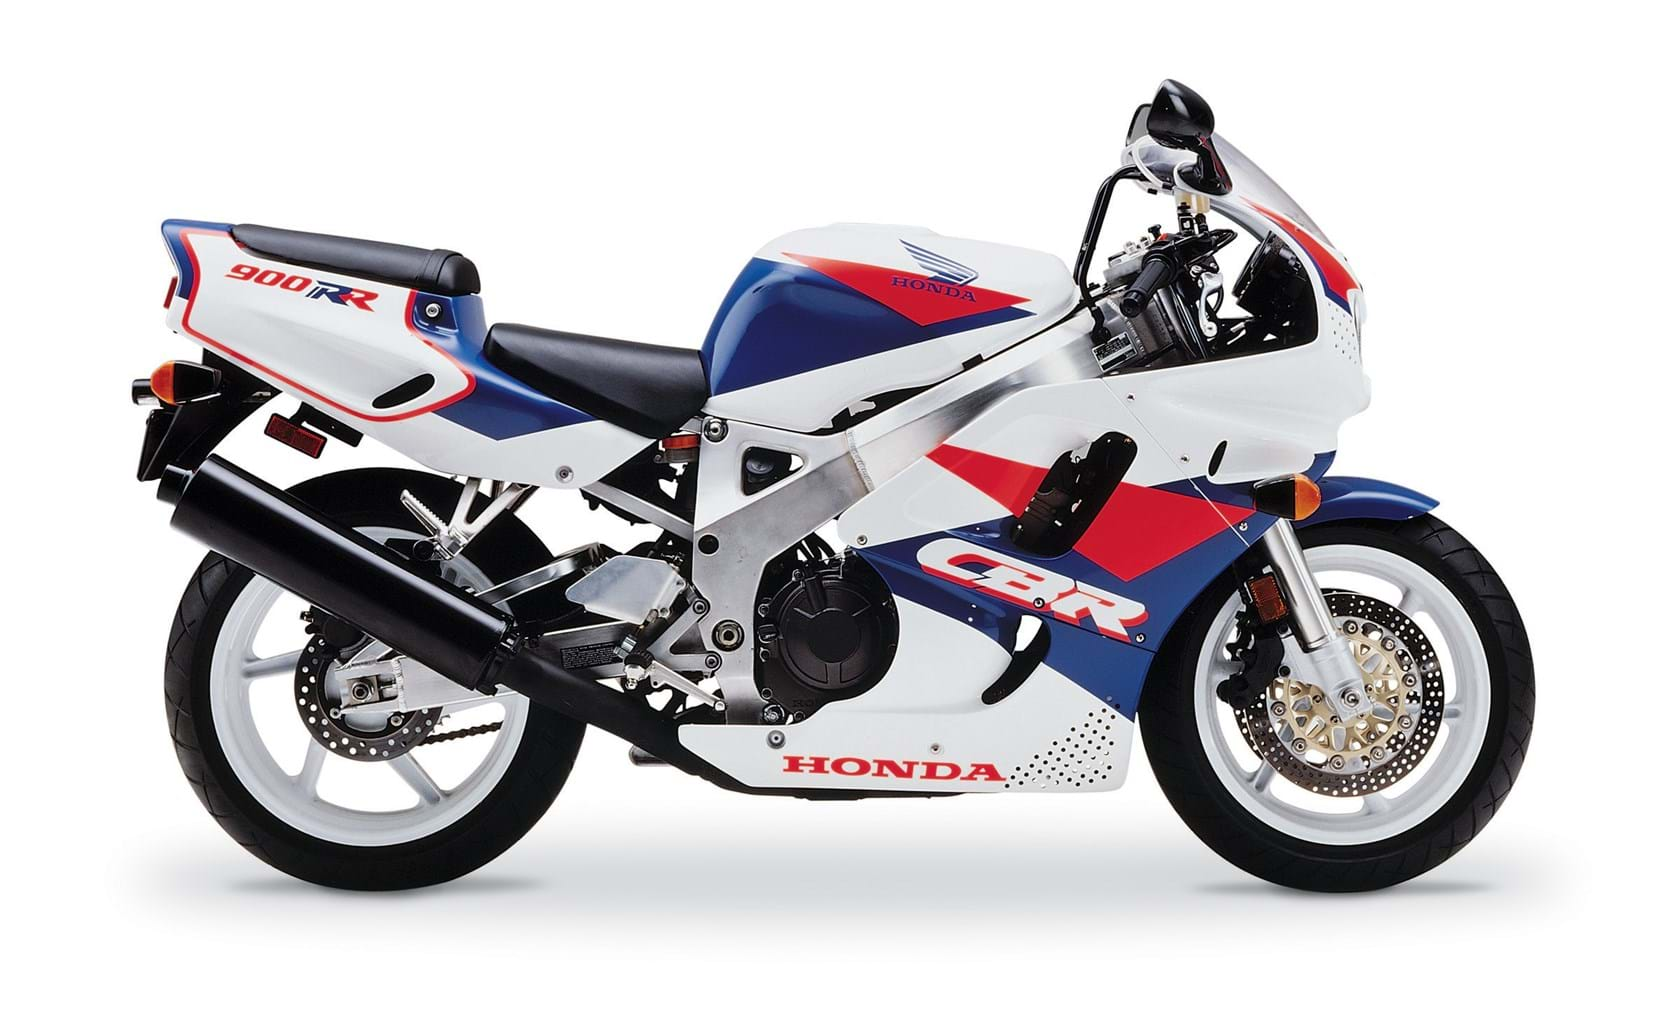 Honda CBR900RR Fireblade For Sale